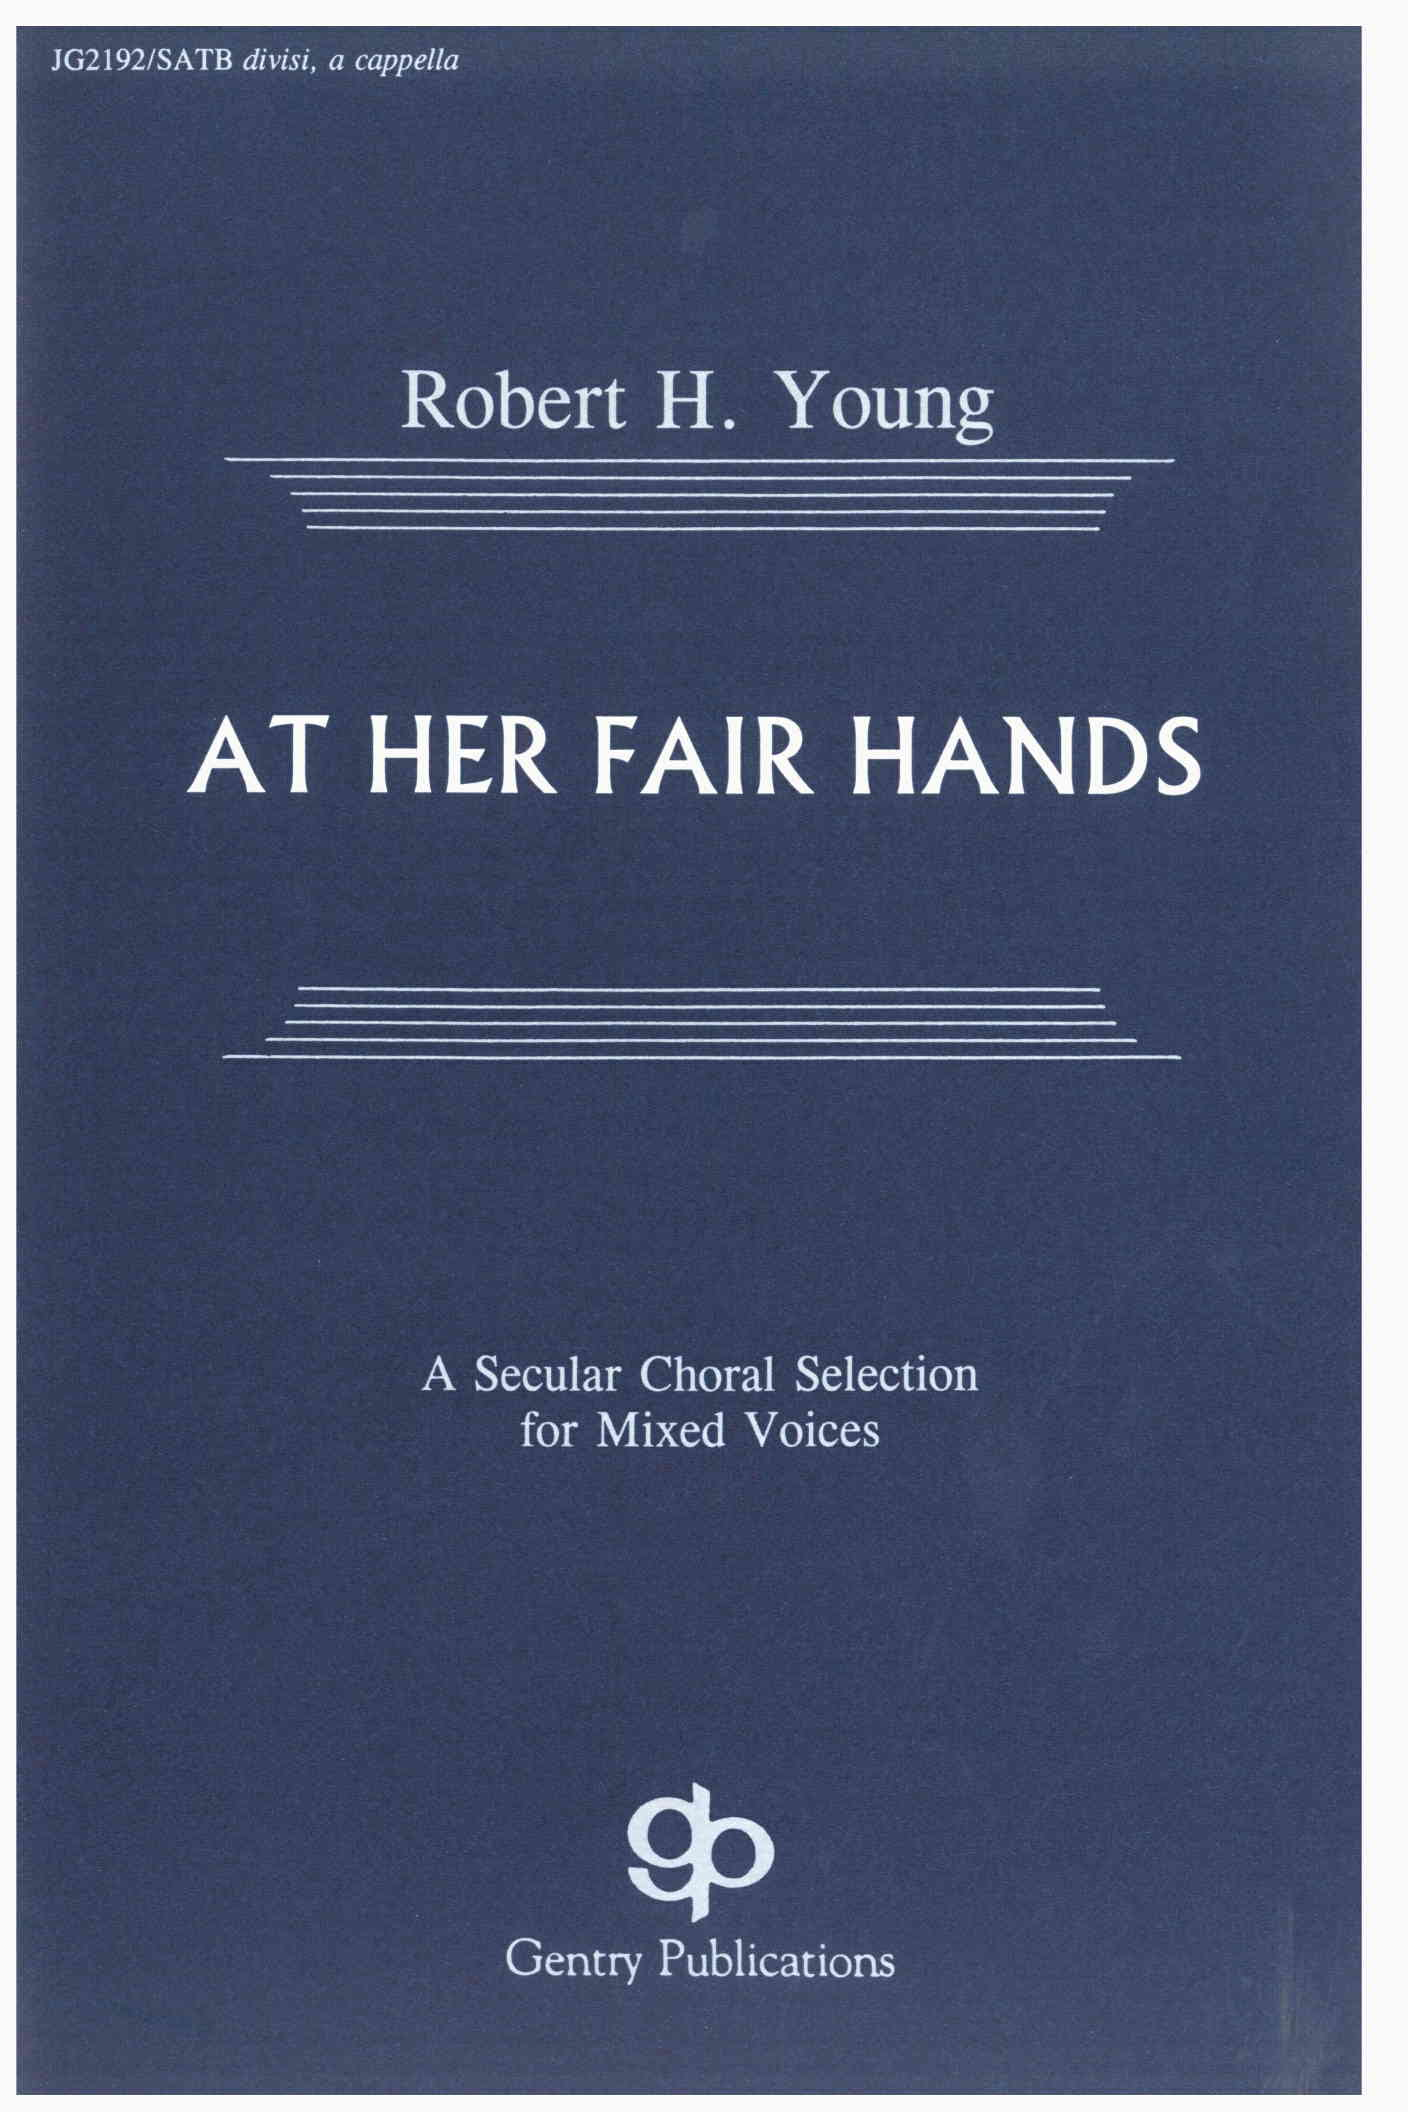 At Her Fair Hands